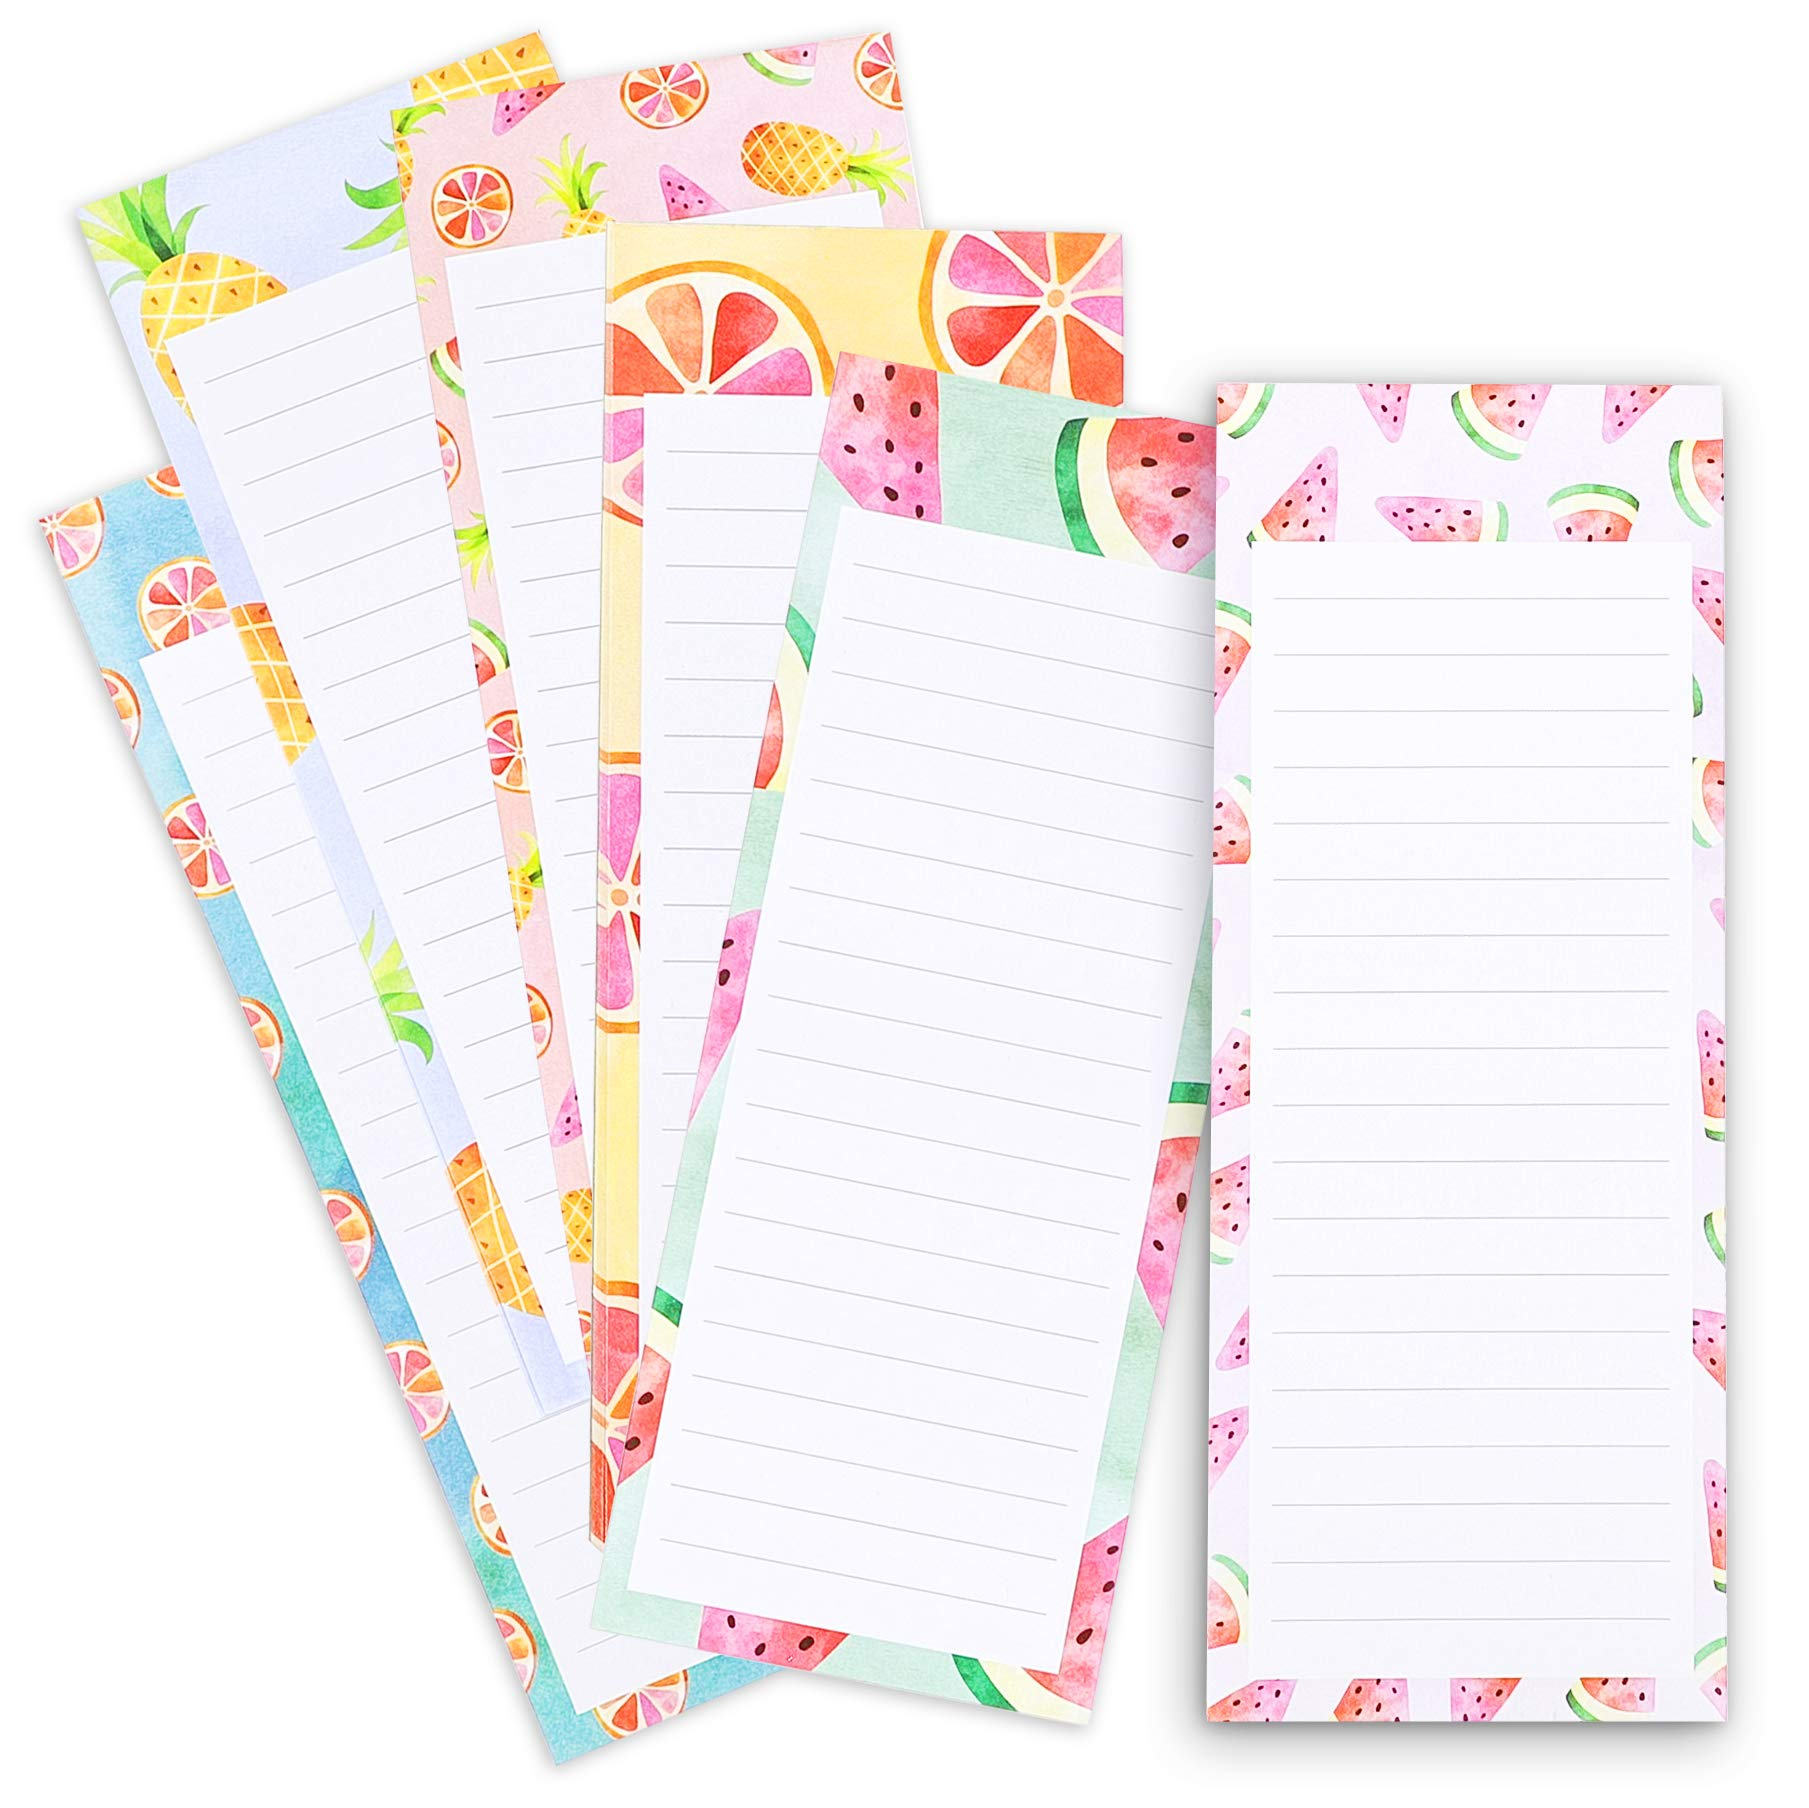 Juvale 6-Pack To Do List – Magnetic Notepads for Fridge, Grocery Shopping, and Reminders, Colorful Fruit Designs, 60 Sheets Per Memo Pad, 3.5 x 9 Inches